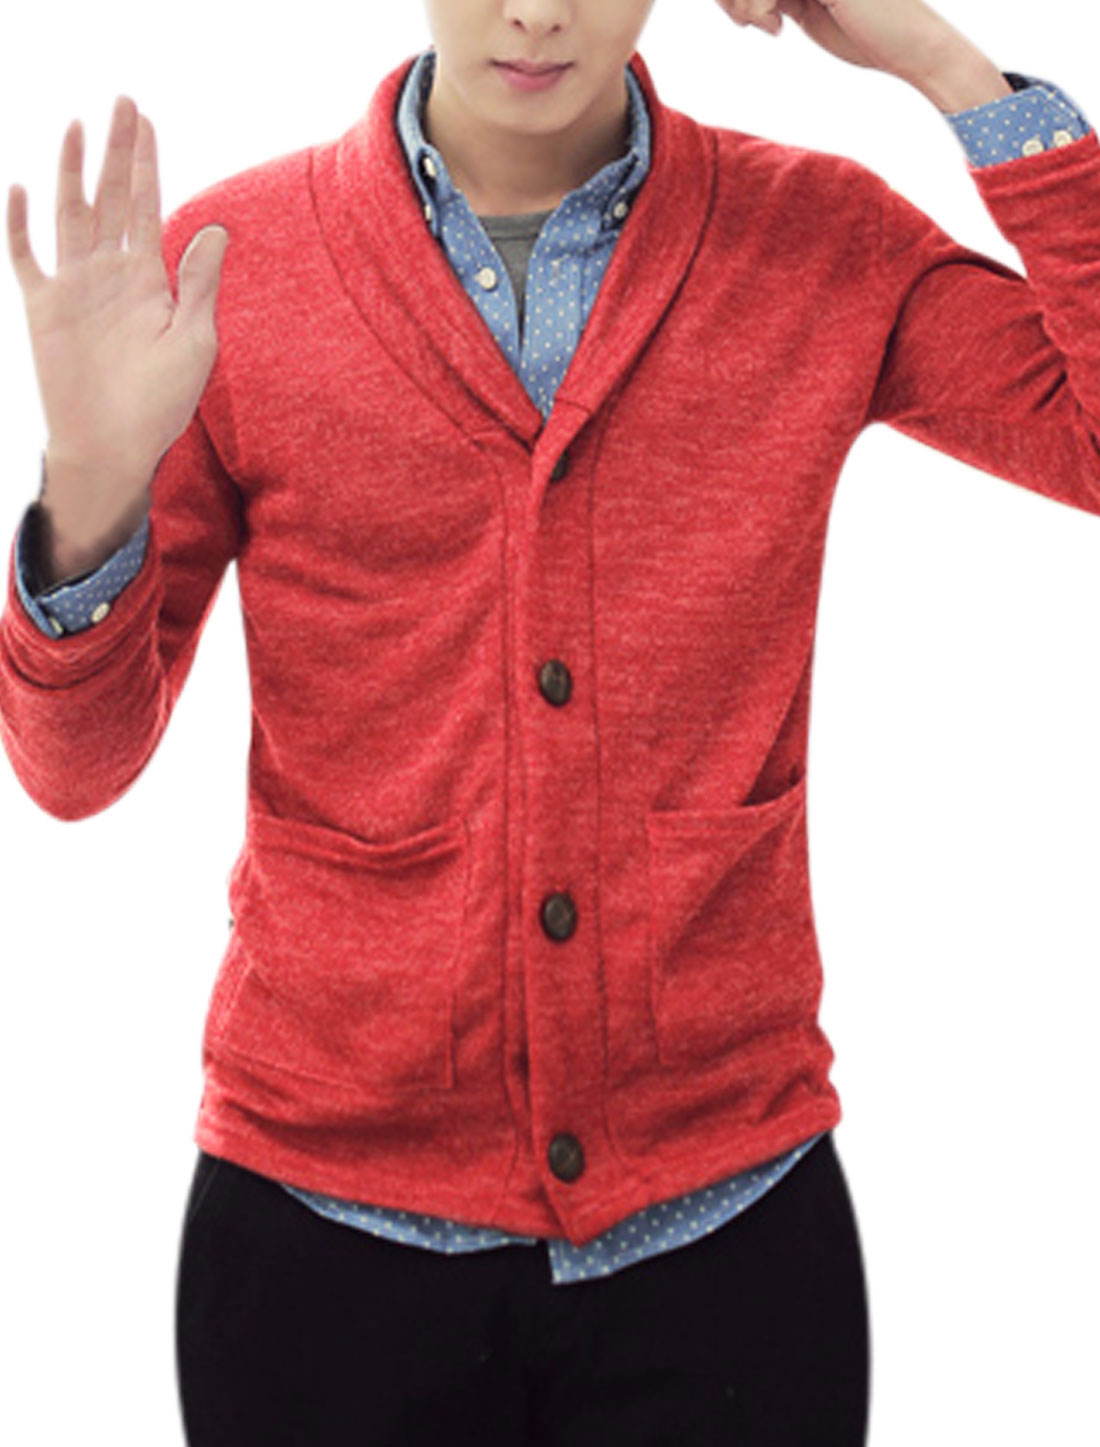 Men Long Sleeves Button Up Stylish Orange Red Knit Cardigan M